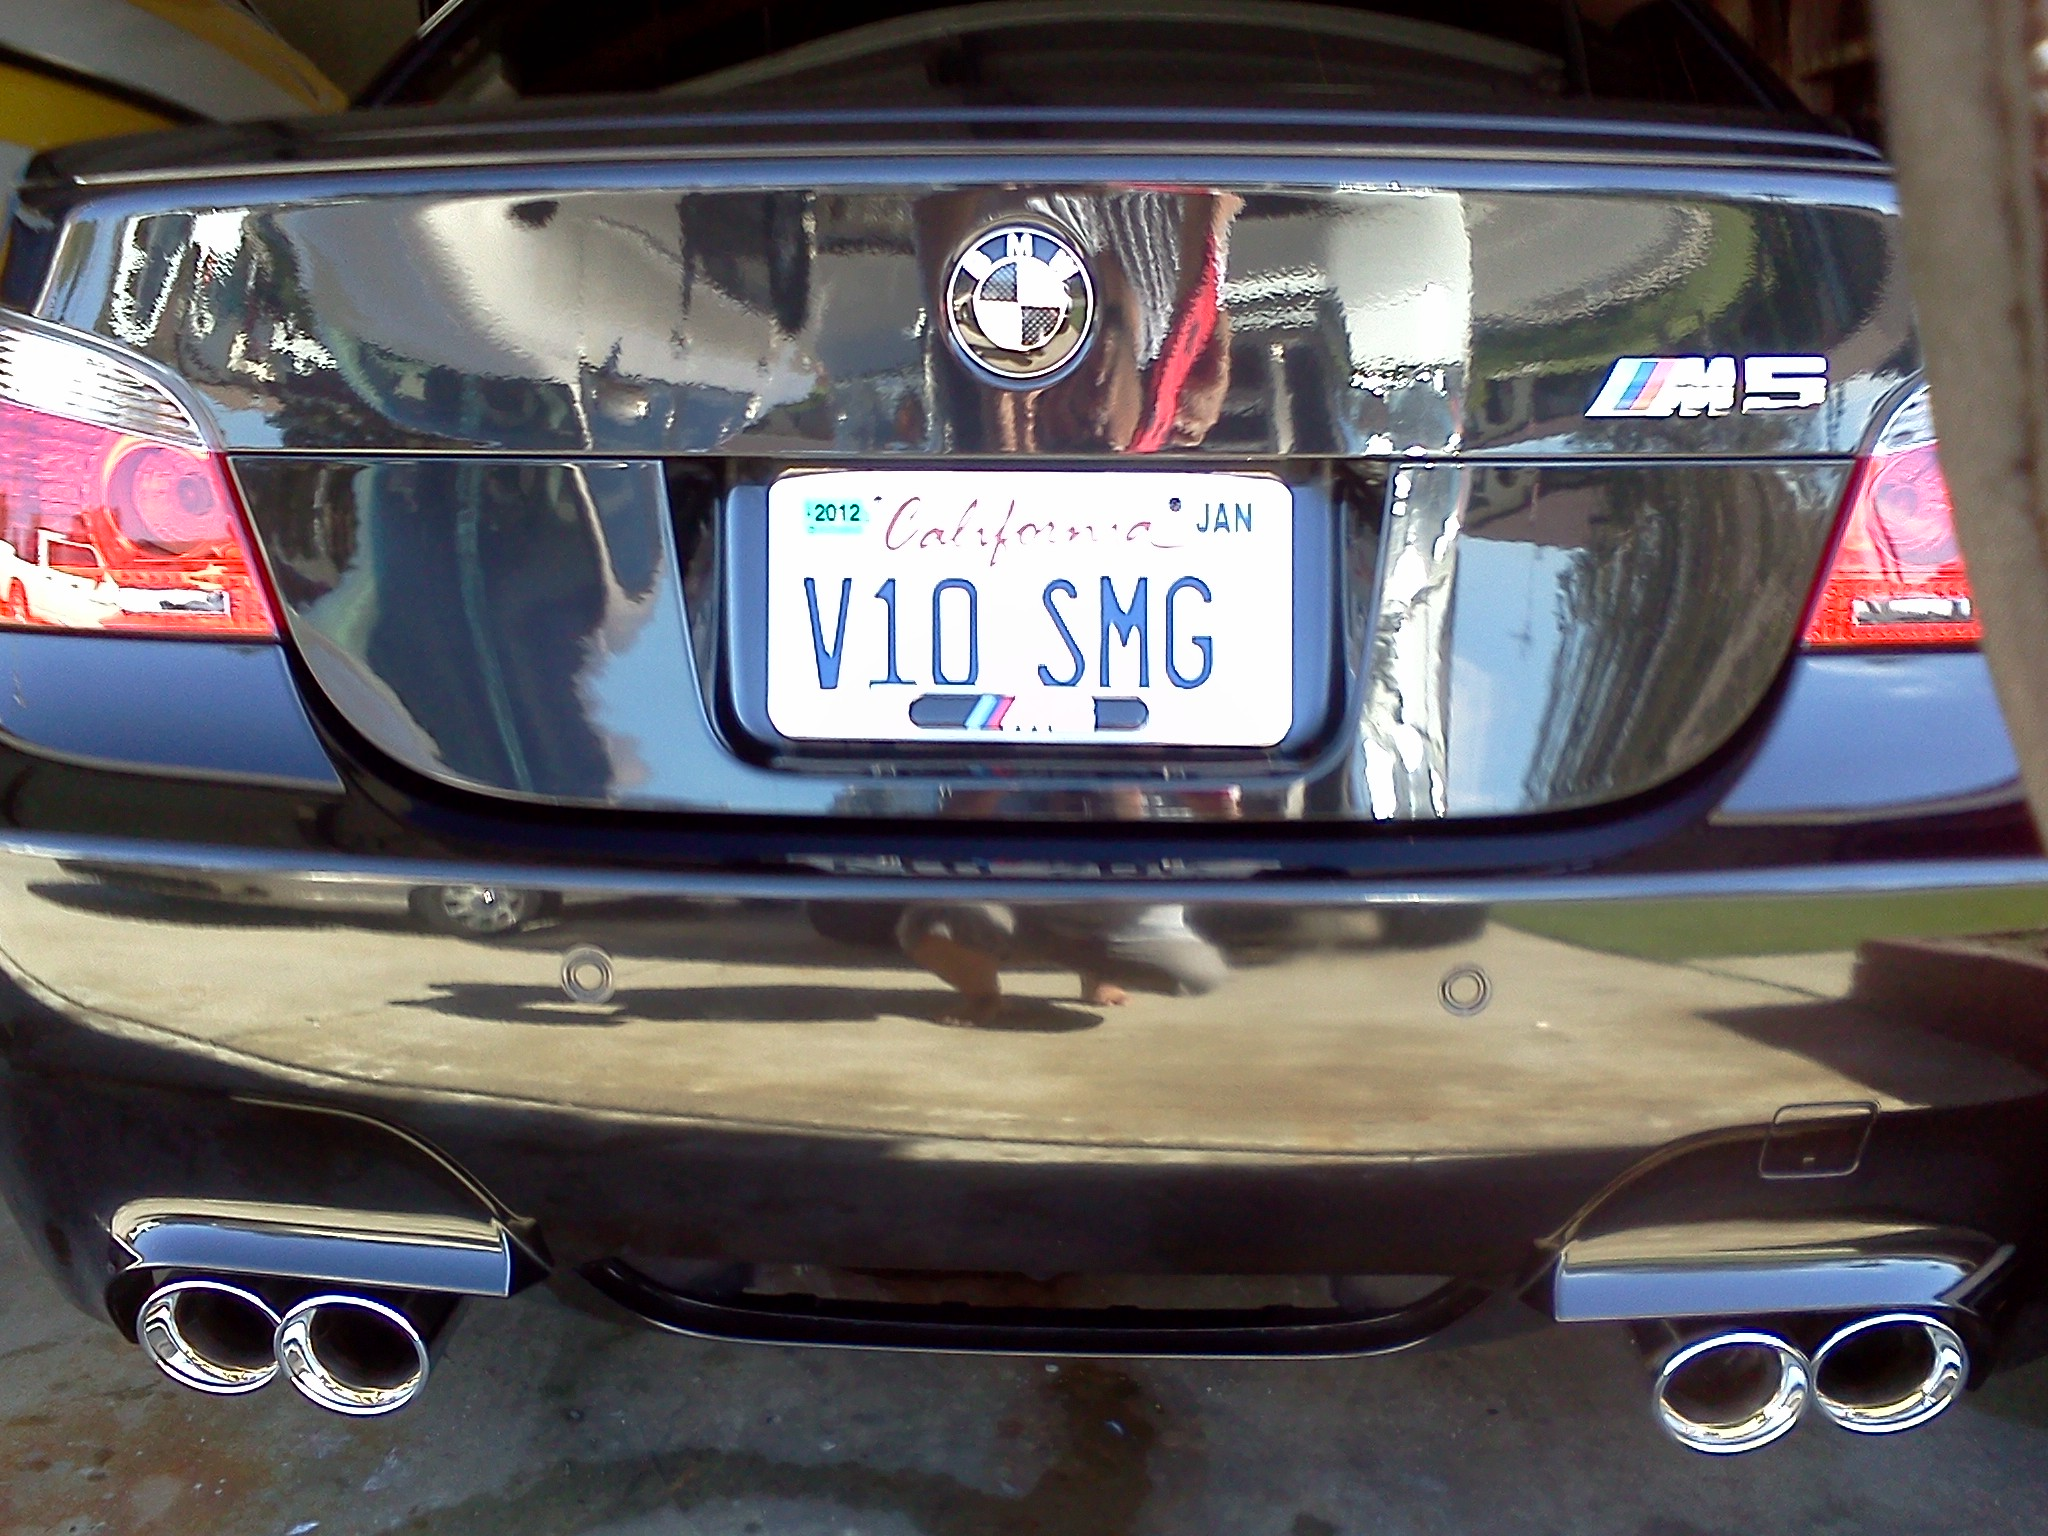 Best Vanity Plates Page 5 BMW M5 Forum And M6 Forums